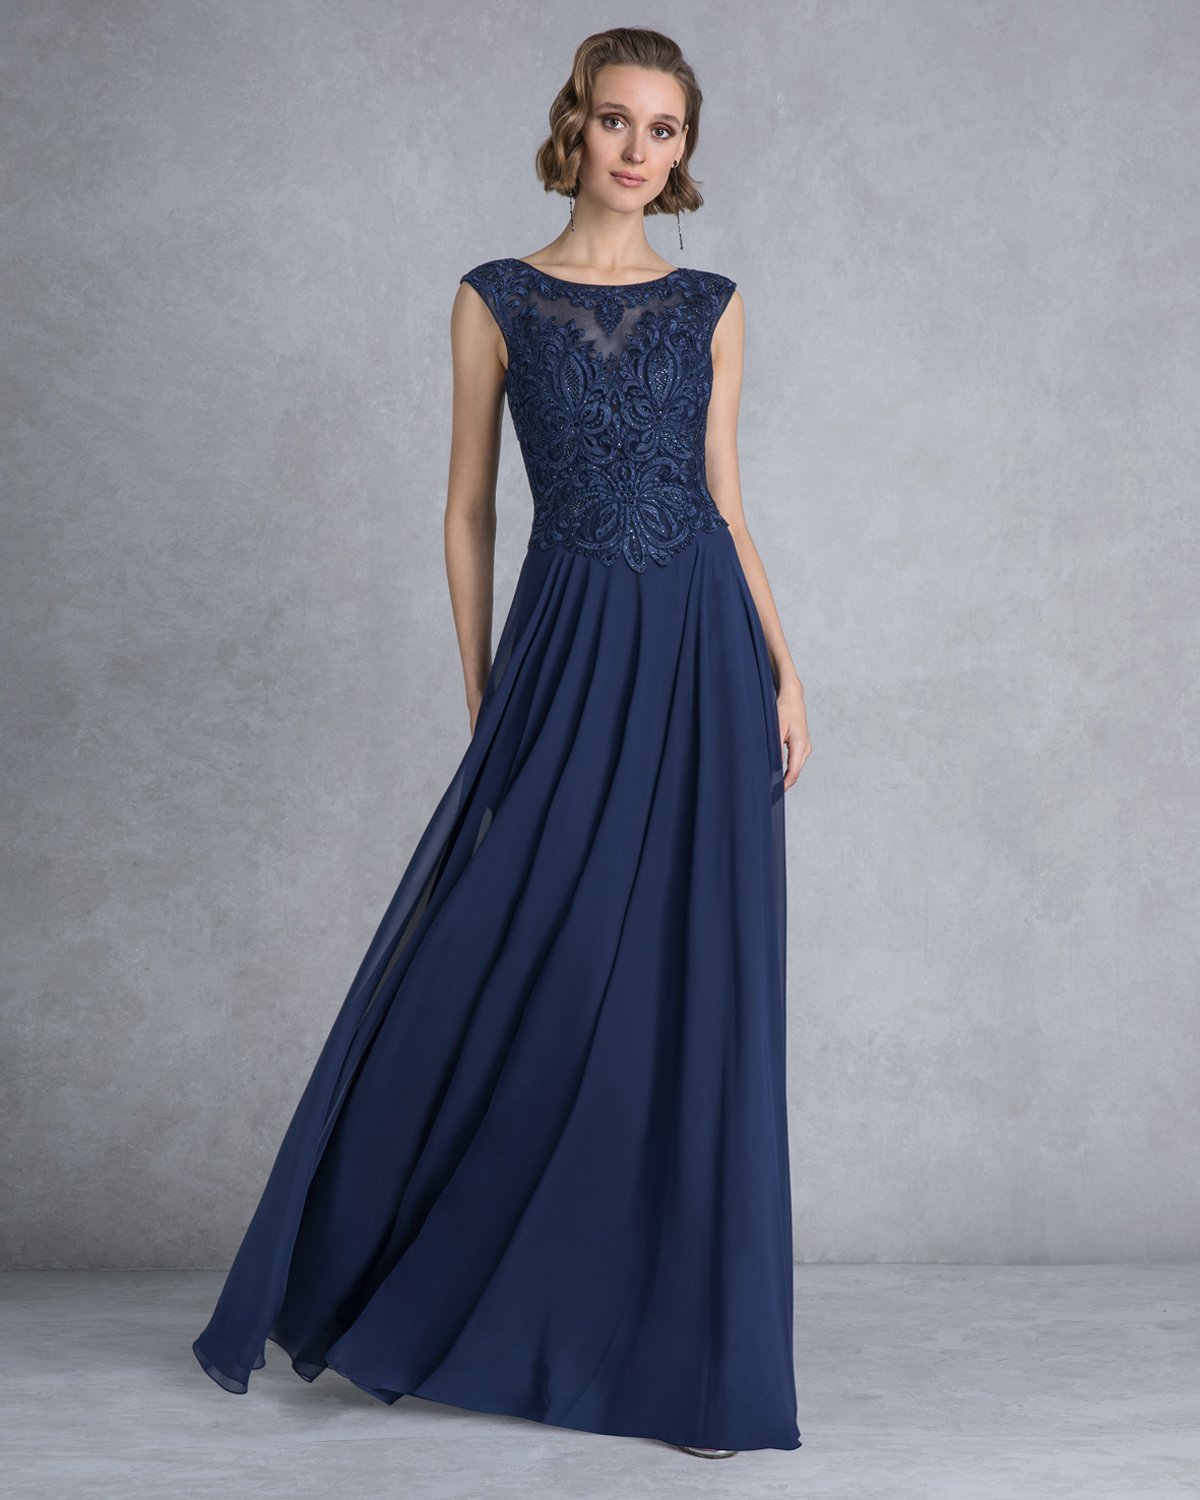 Evening Dresses / Long evening dress with lace top